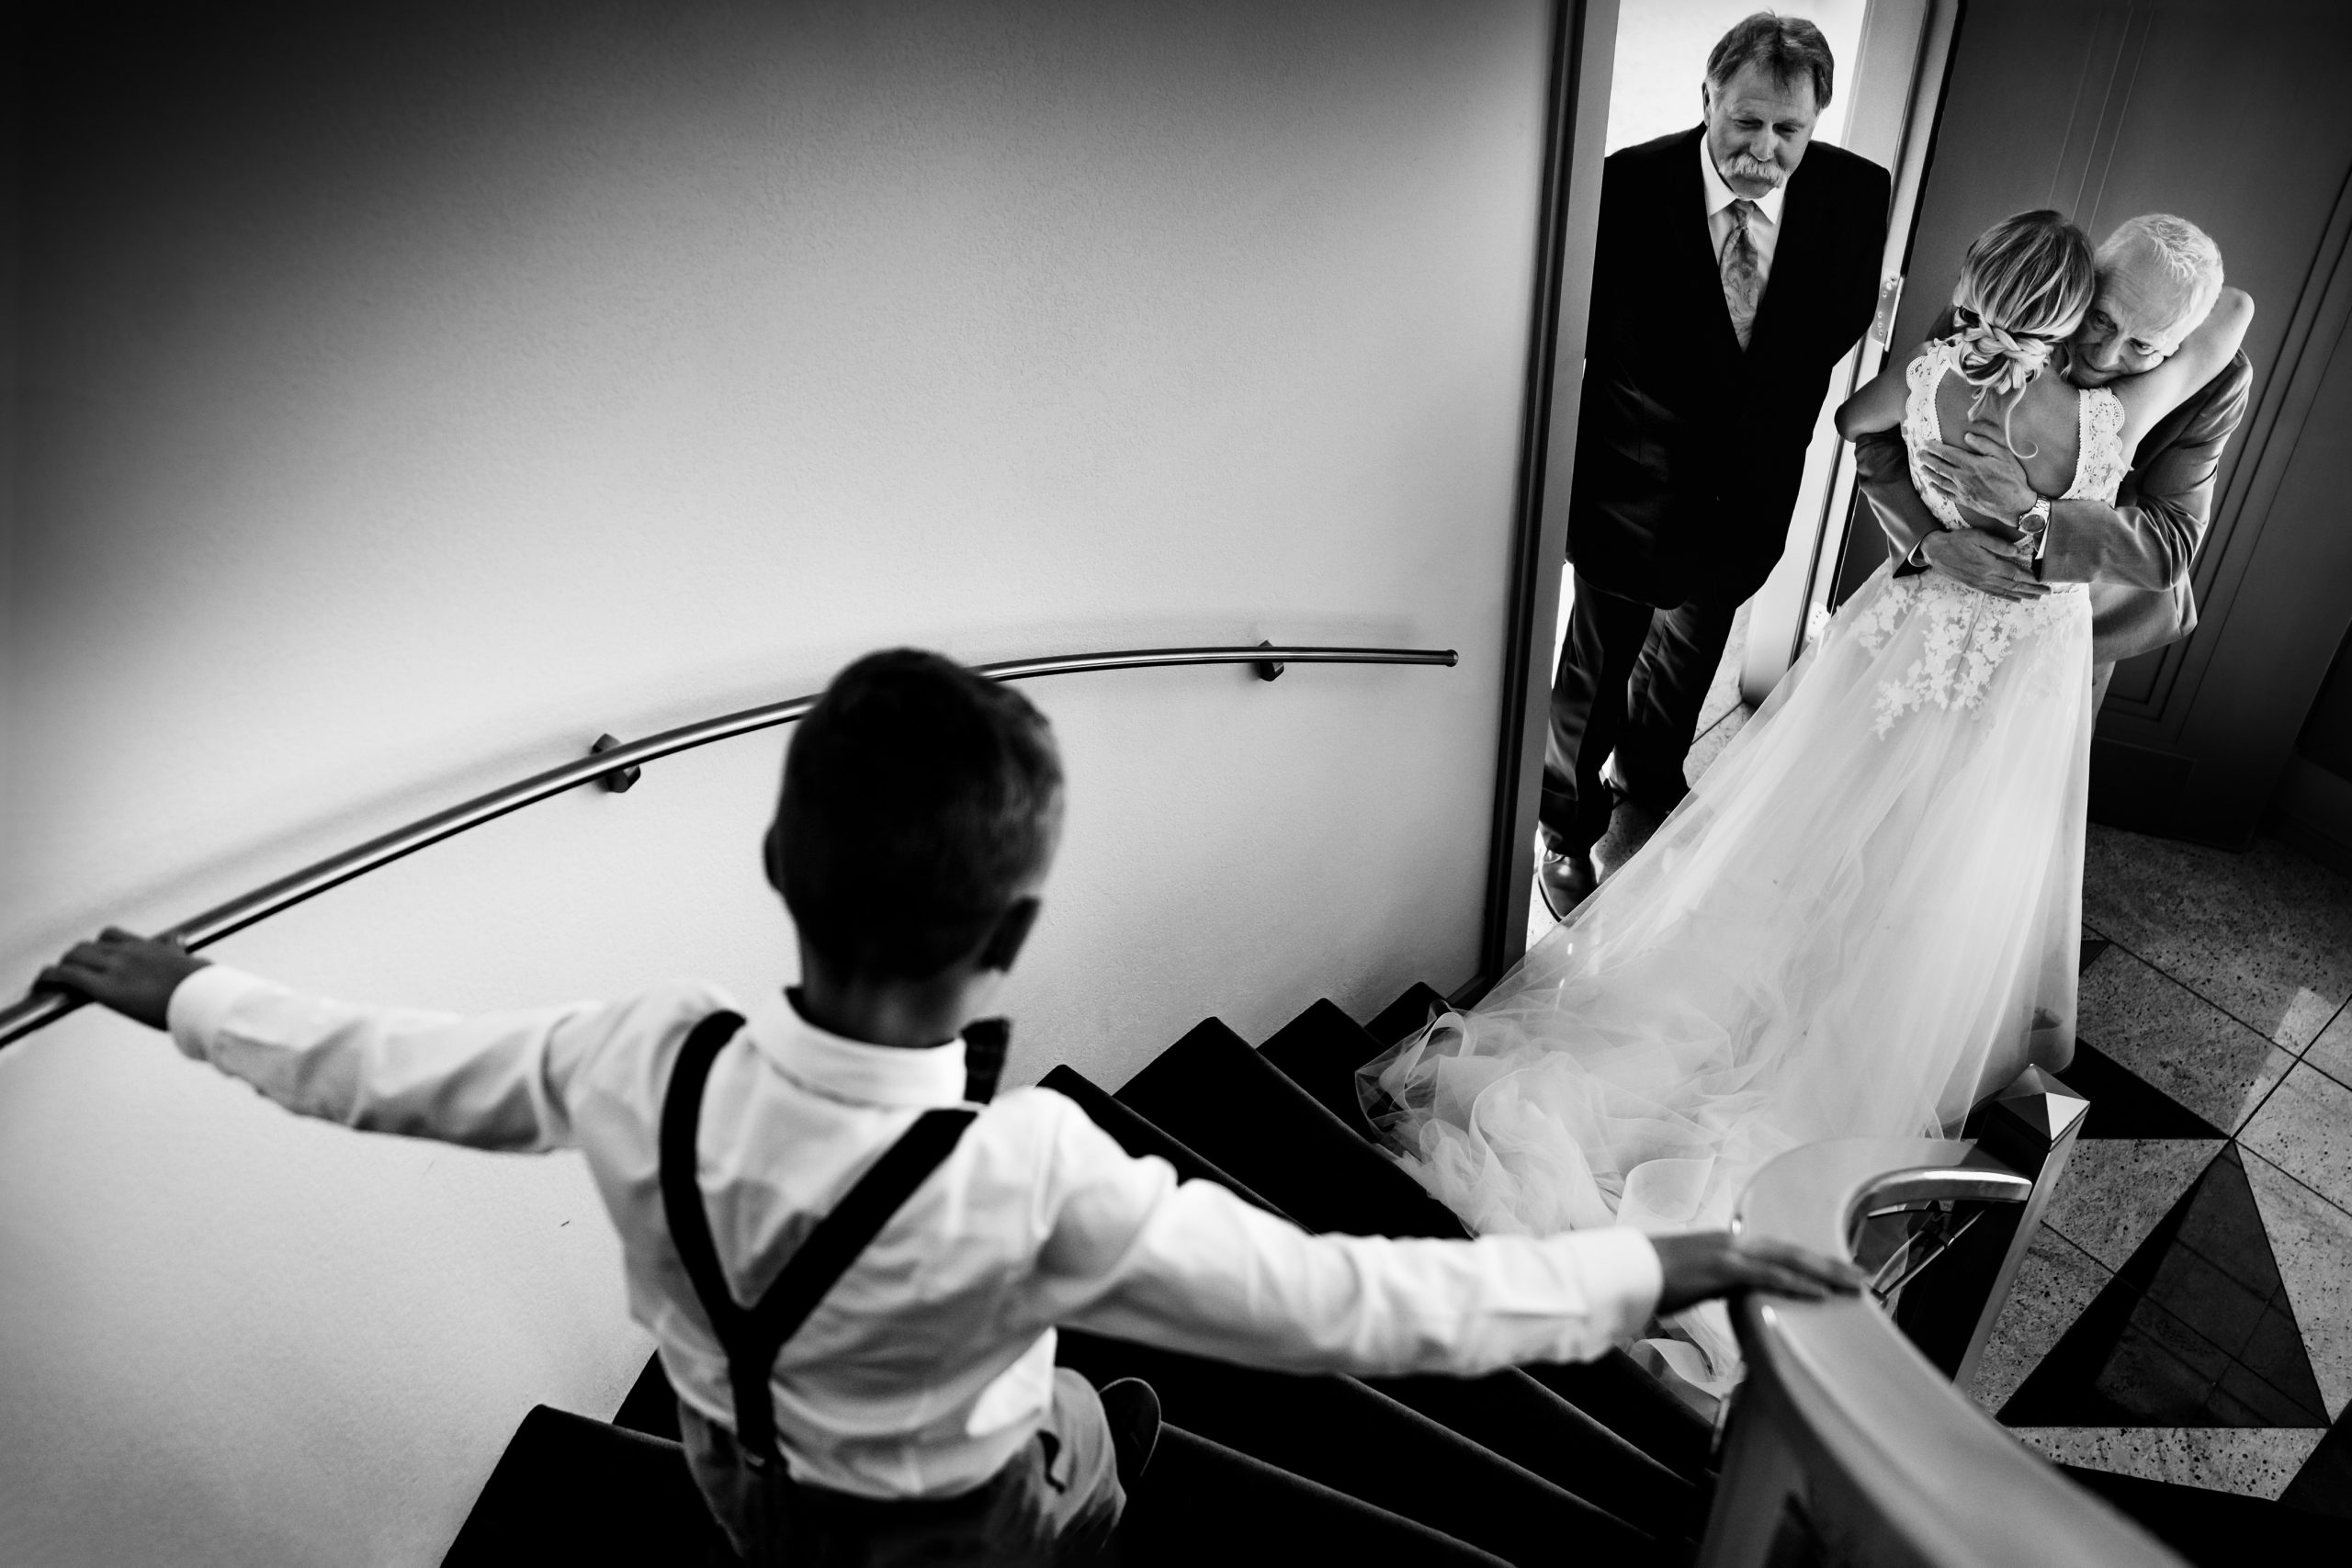 Boy follows bride down stairs.